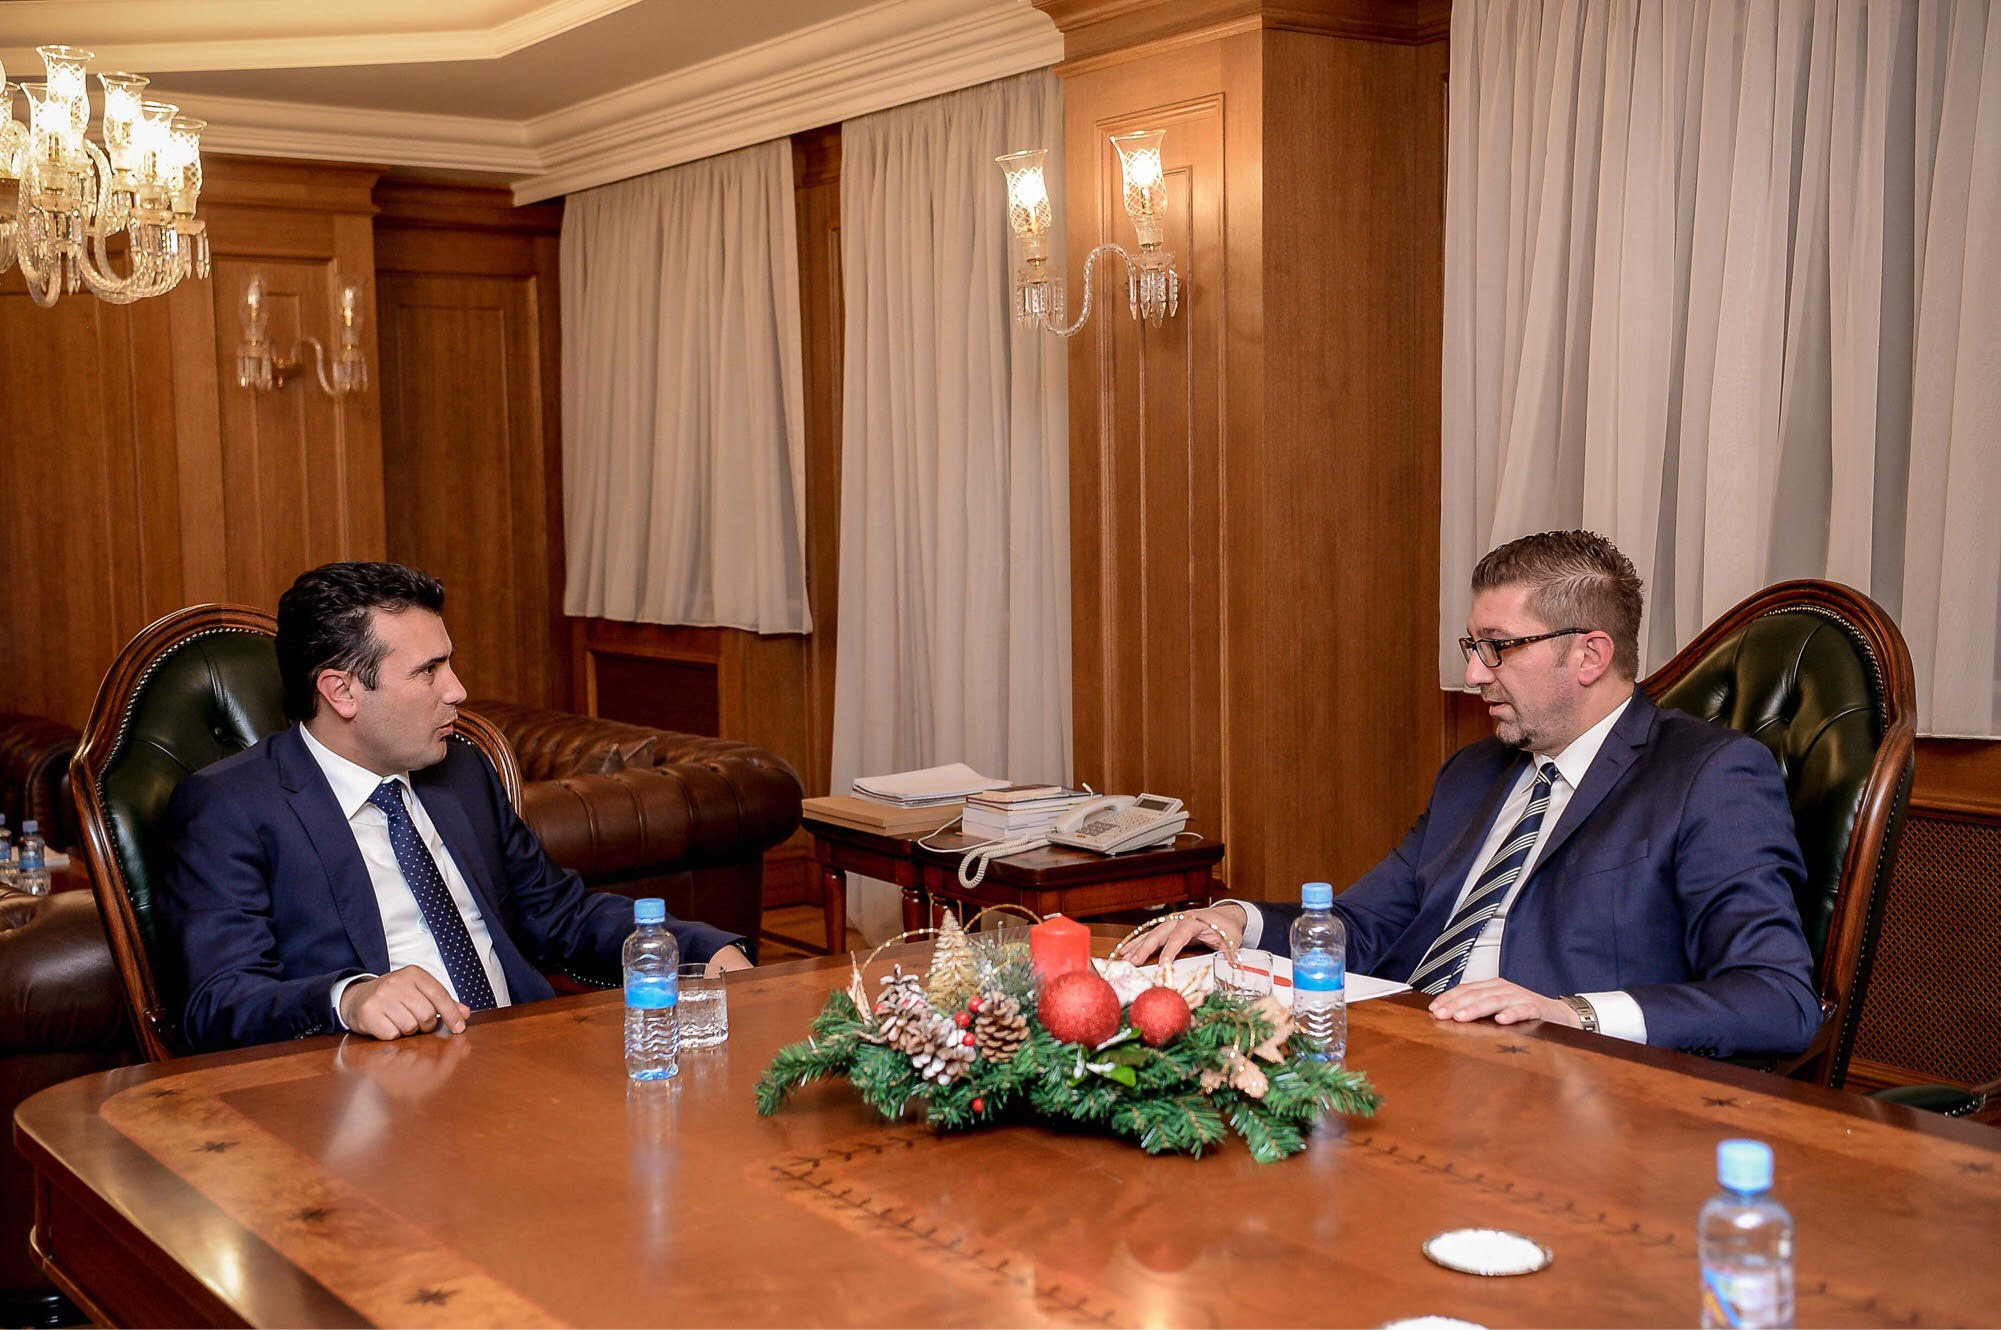 Leader of the ruling party Zaev meets head of the opposition Mickoski